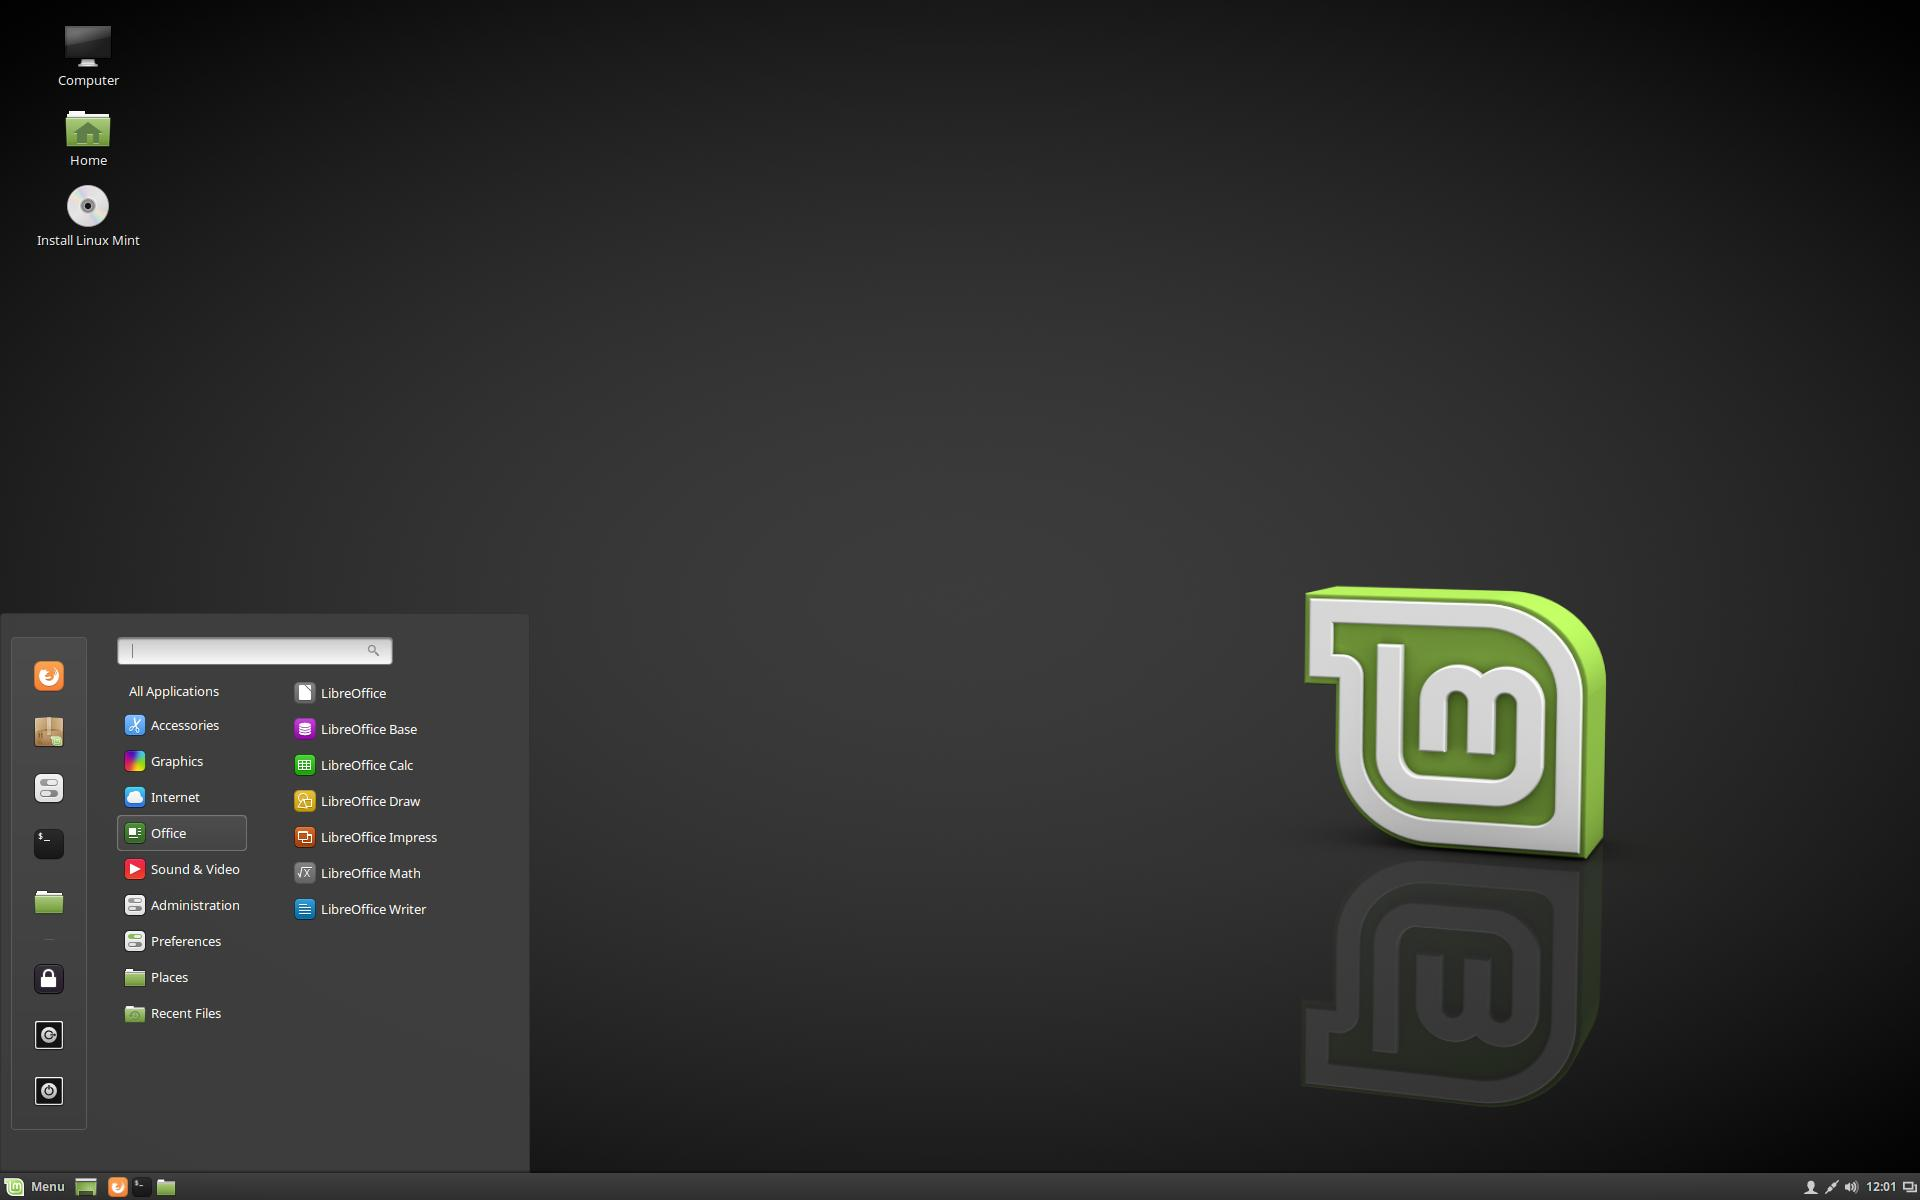 Linux Mint in neuer Version erschienen - Support bis 2021